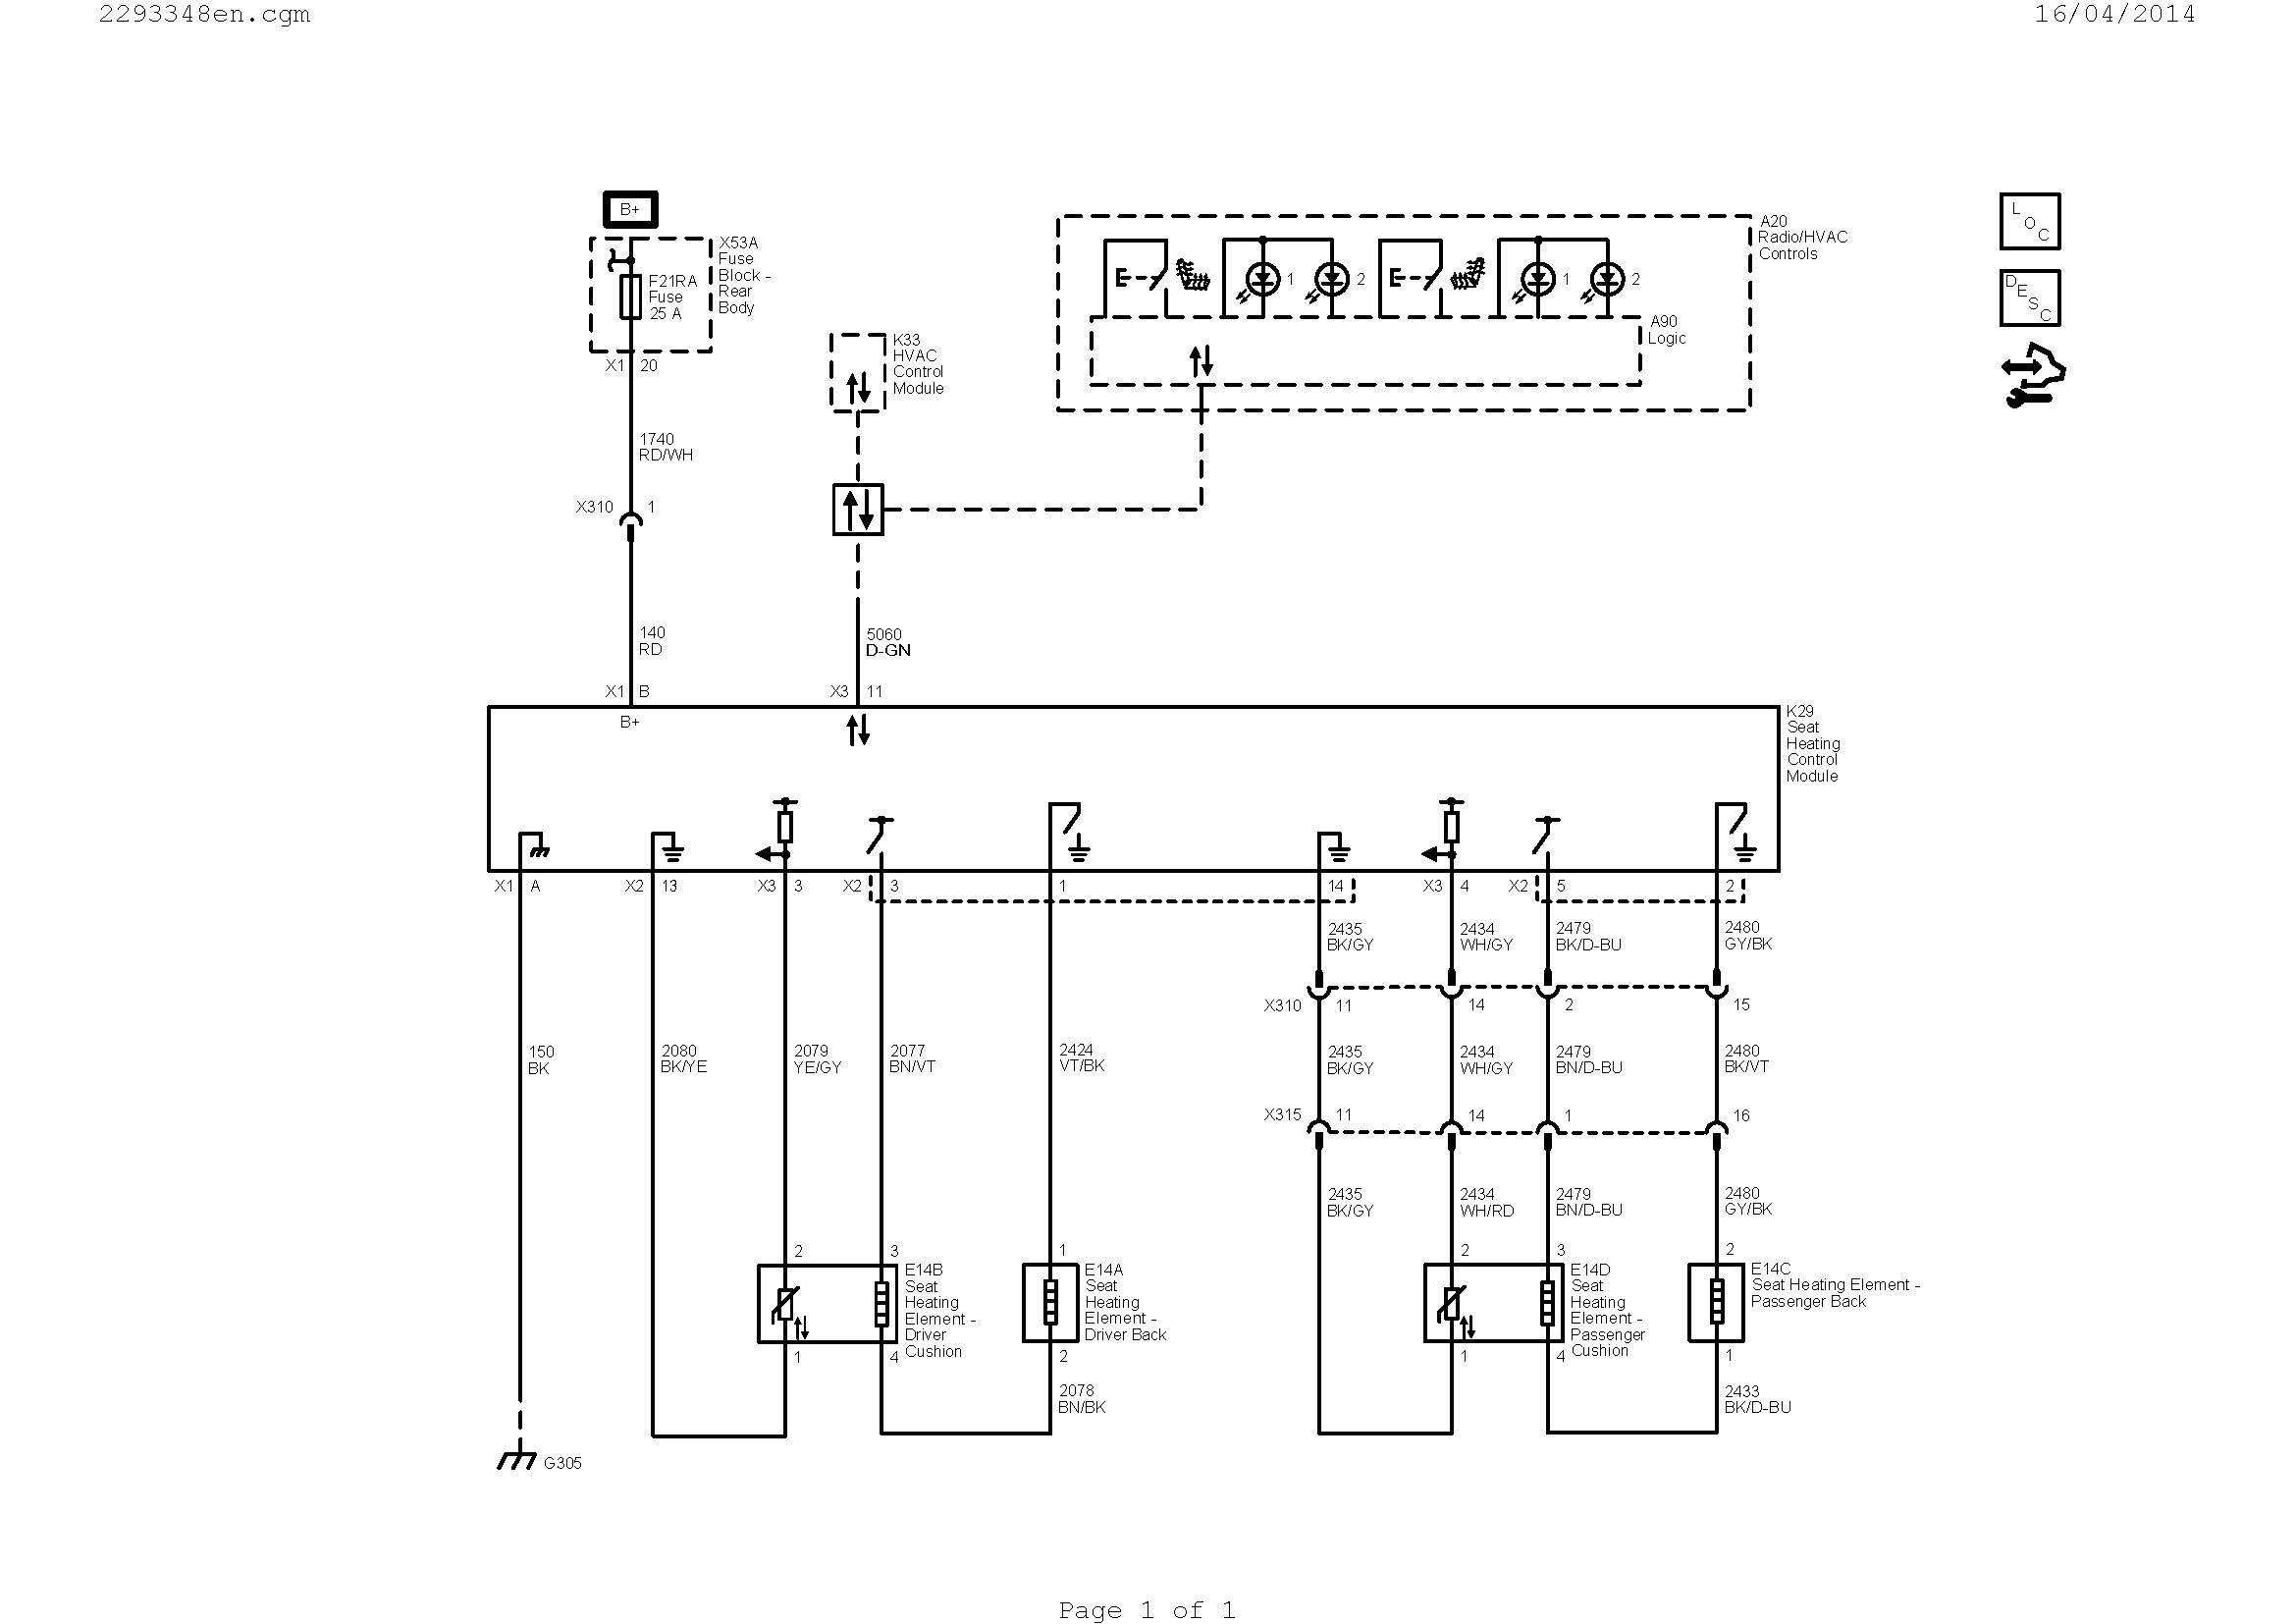 wiring diagram for a nest thermostat Collection-Nest Wireless thermostat Wiring Diagram Refrence Wiring Diagram Ac Valid Hvac Diagram Best Hvac Diagram 0d 1-p